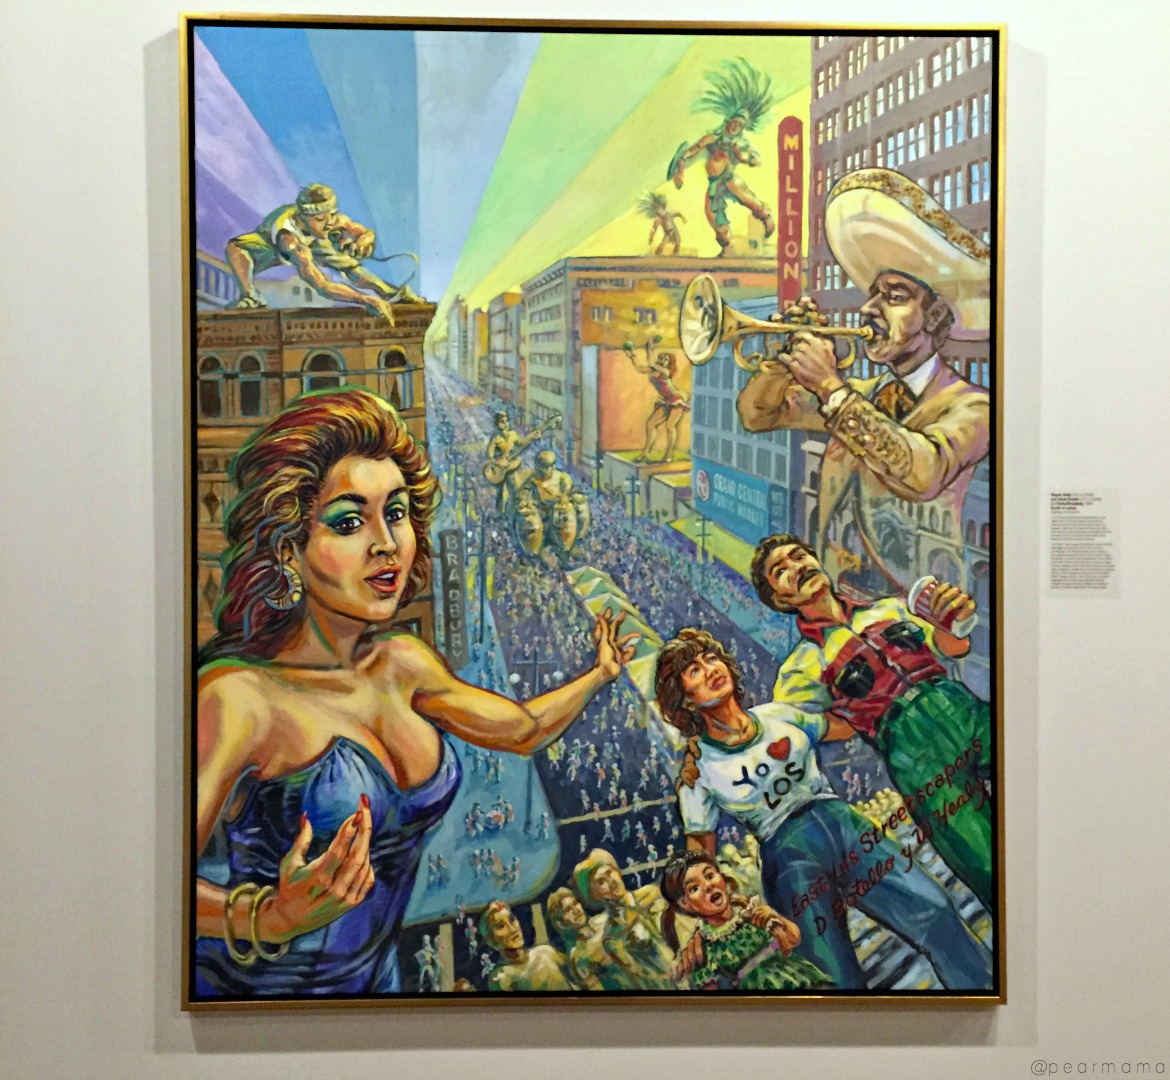 Arte Chicano Murals Chicano Art At The Museum Of Latin American Art Pearmama